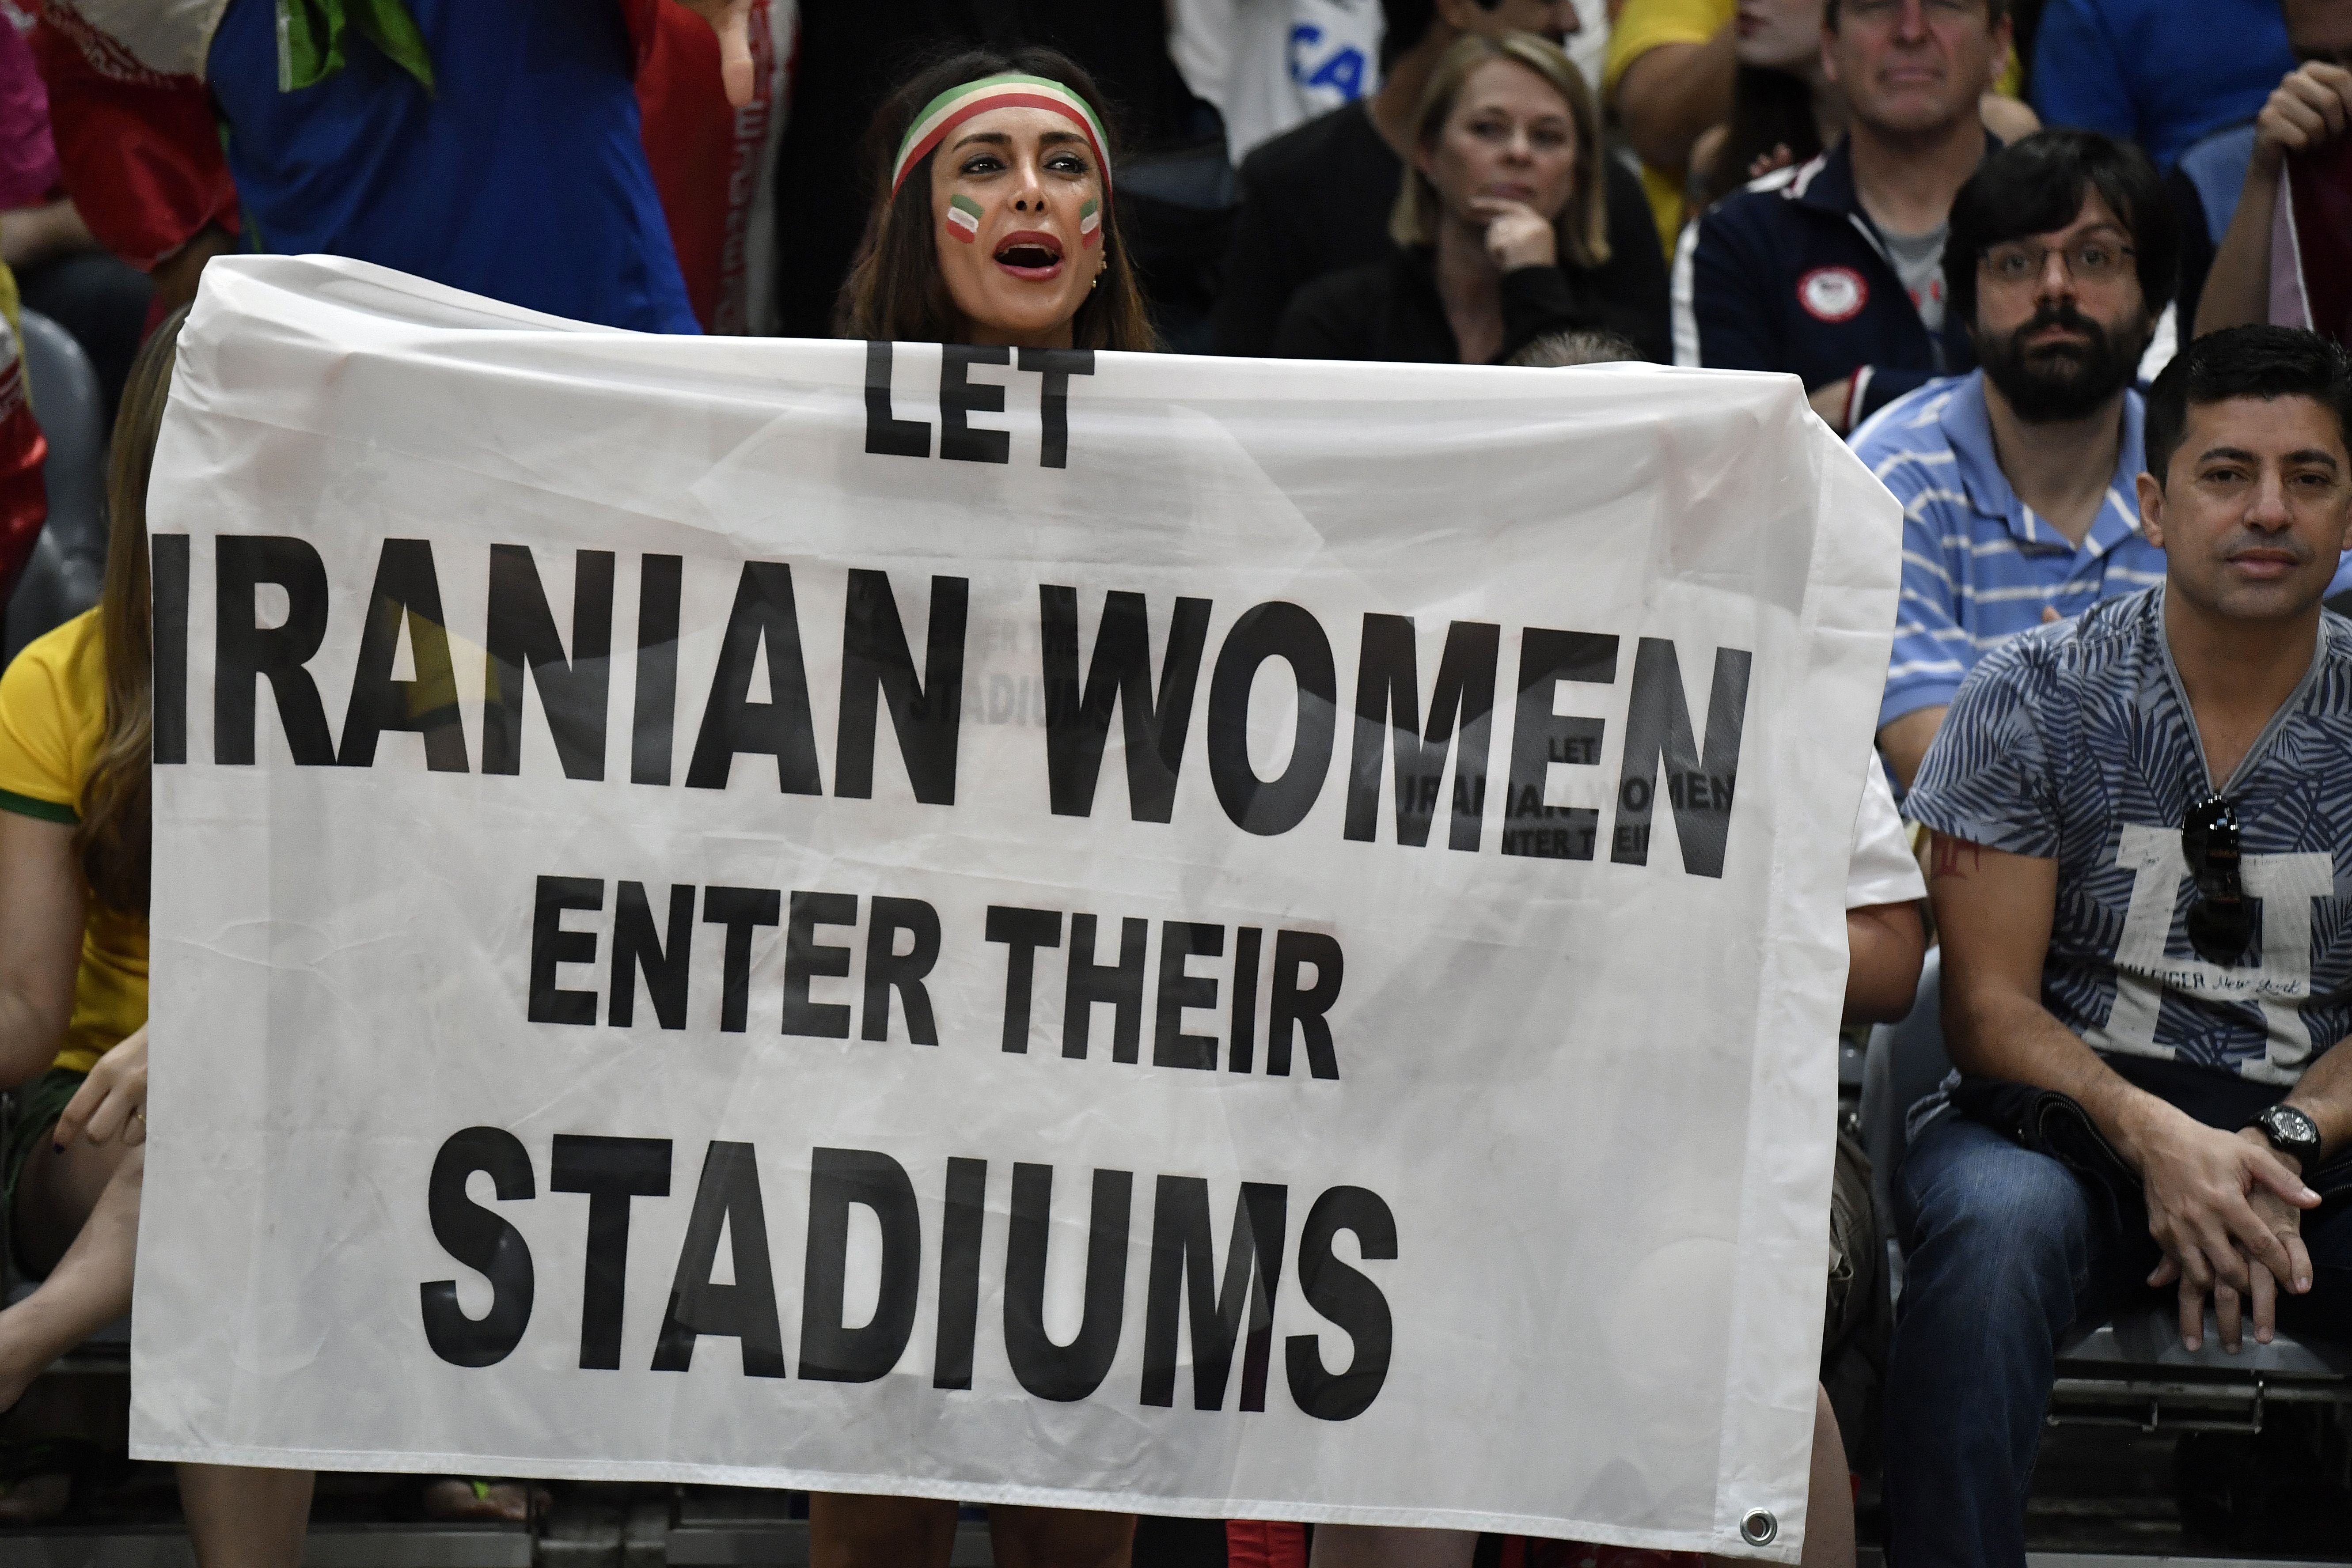 Iran supporters attend the men's qualifying volleyball match between Iran and Egypt at the Maracanazinho stadium in Rio de Janeiro on August 13, 2016, during the Rio 2016 Olympic Games. / AFP / PHILIPPE LOPEZ (Photo credit should read PHILIPPE LOPEZ/AFP/Getty Images)